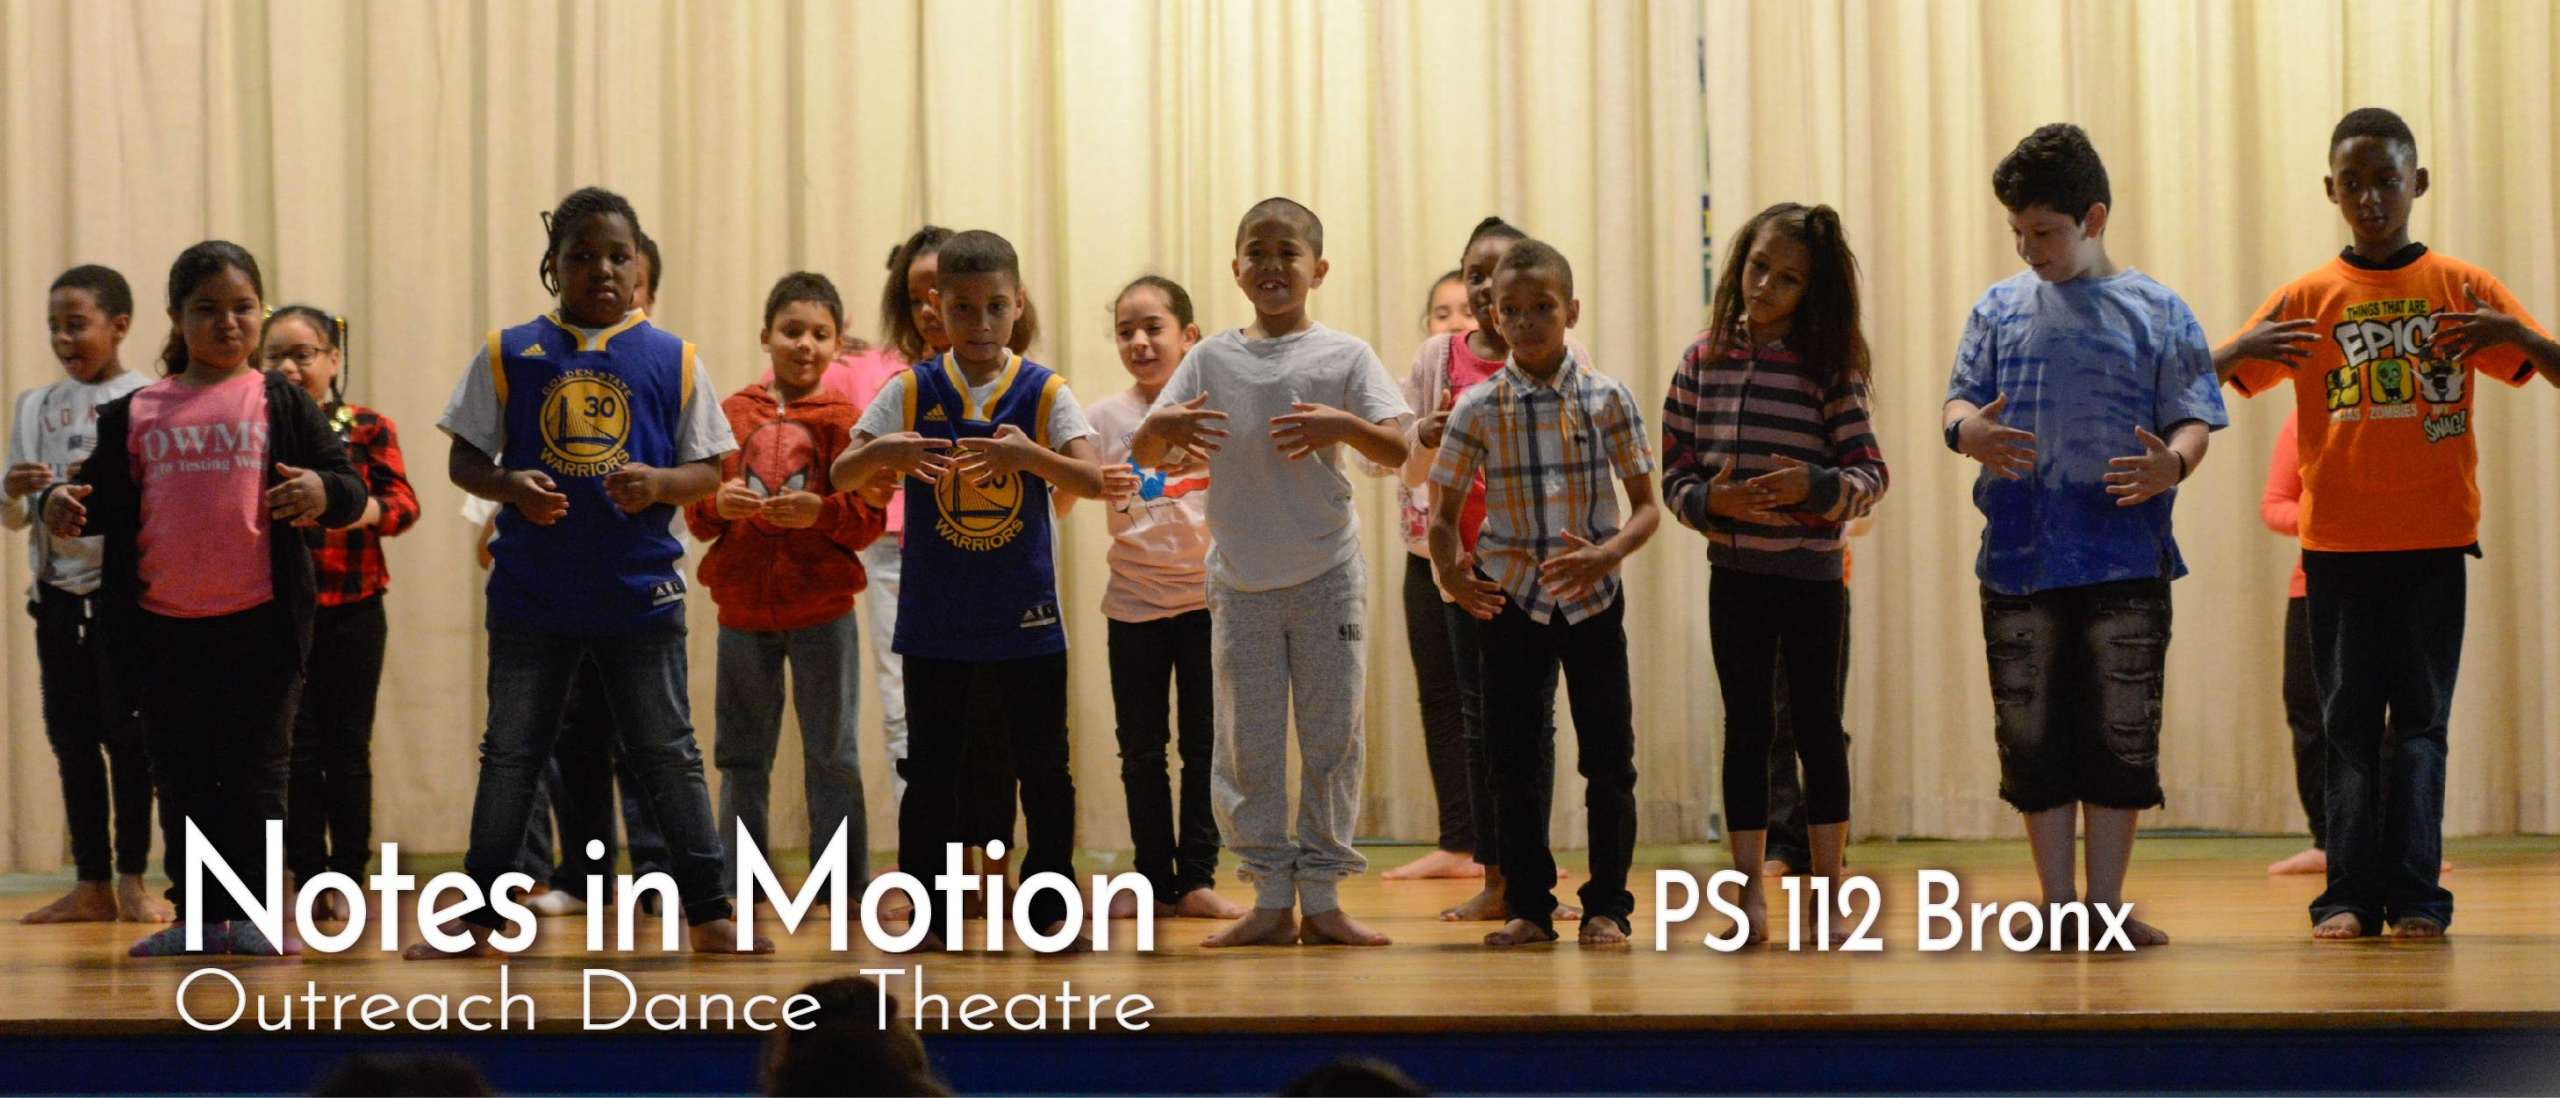 Students performing ballet sequence during culminating event at PS 112, Bronx